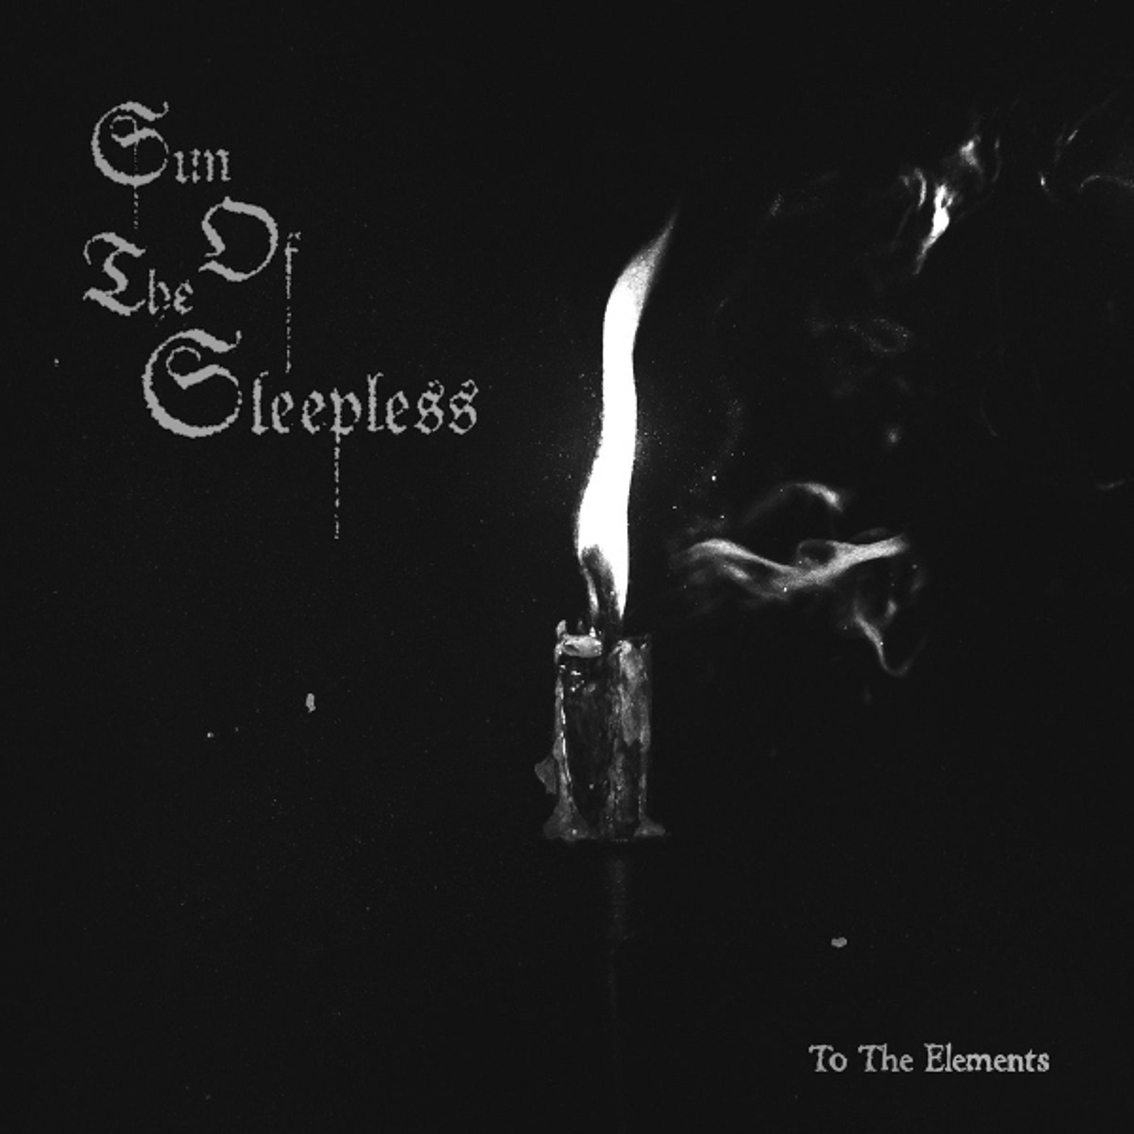 "Sun Of The Sleepless finally readies up debut album ""To the elements"" - out as a 2CD and various vinyl formats - listen to the first track!"